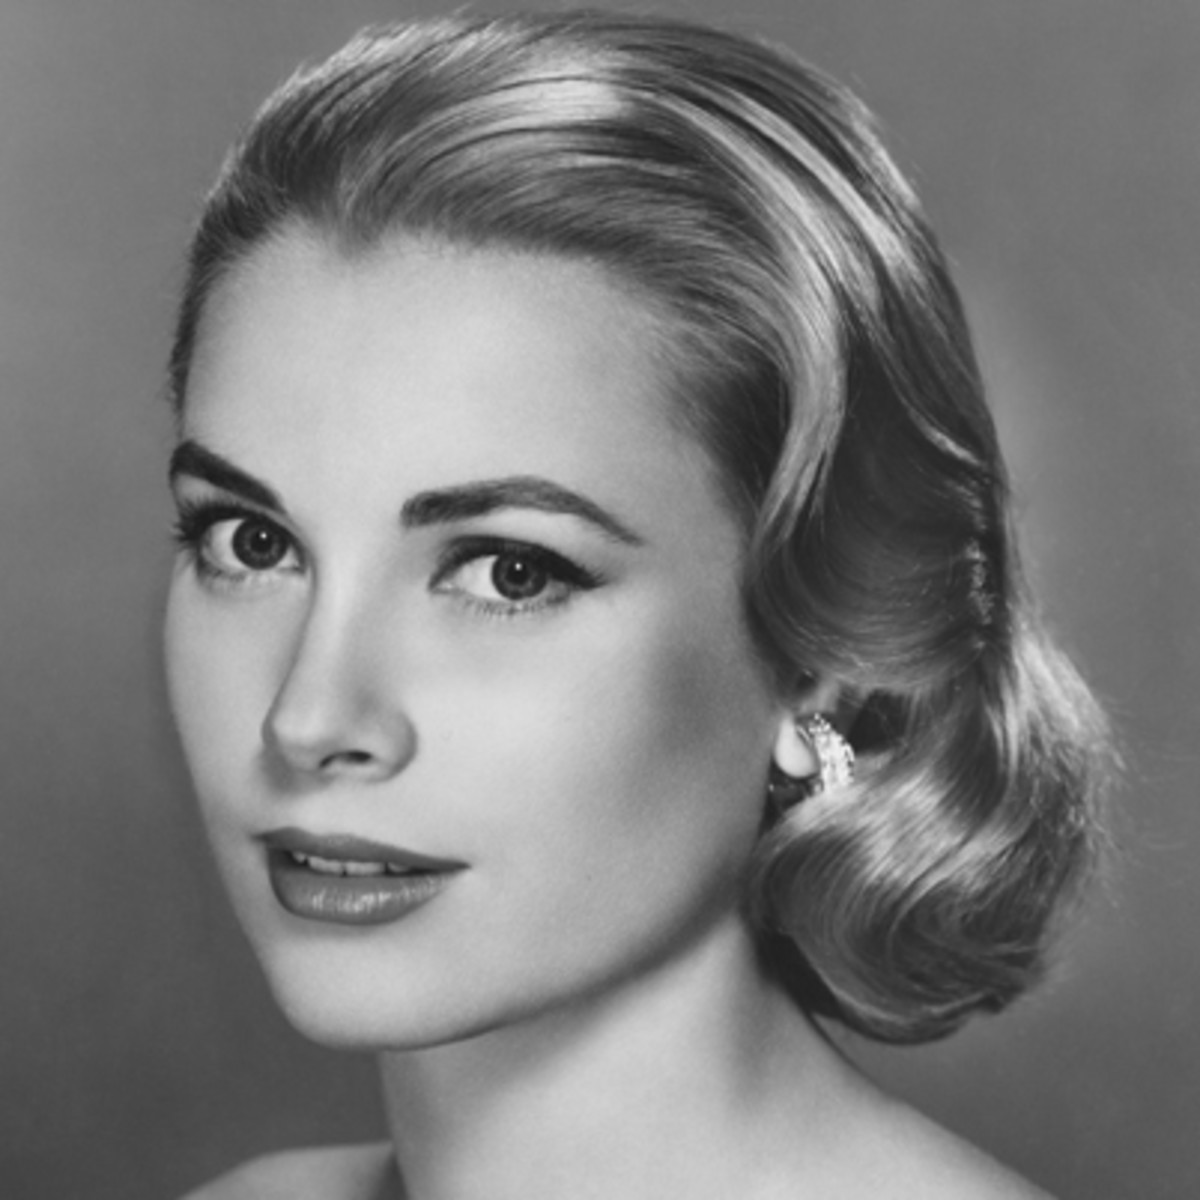 grace-kelly-9362226-1-402.jpg